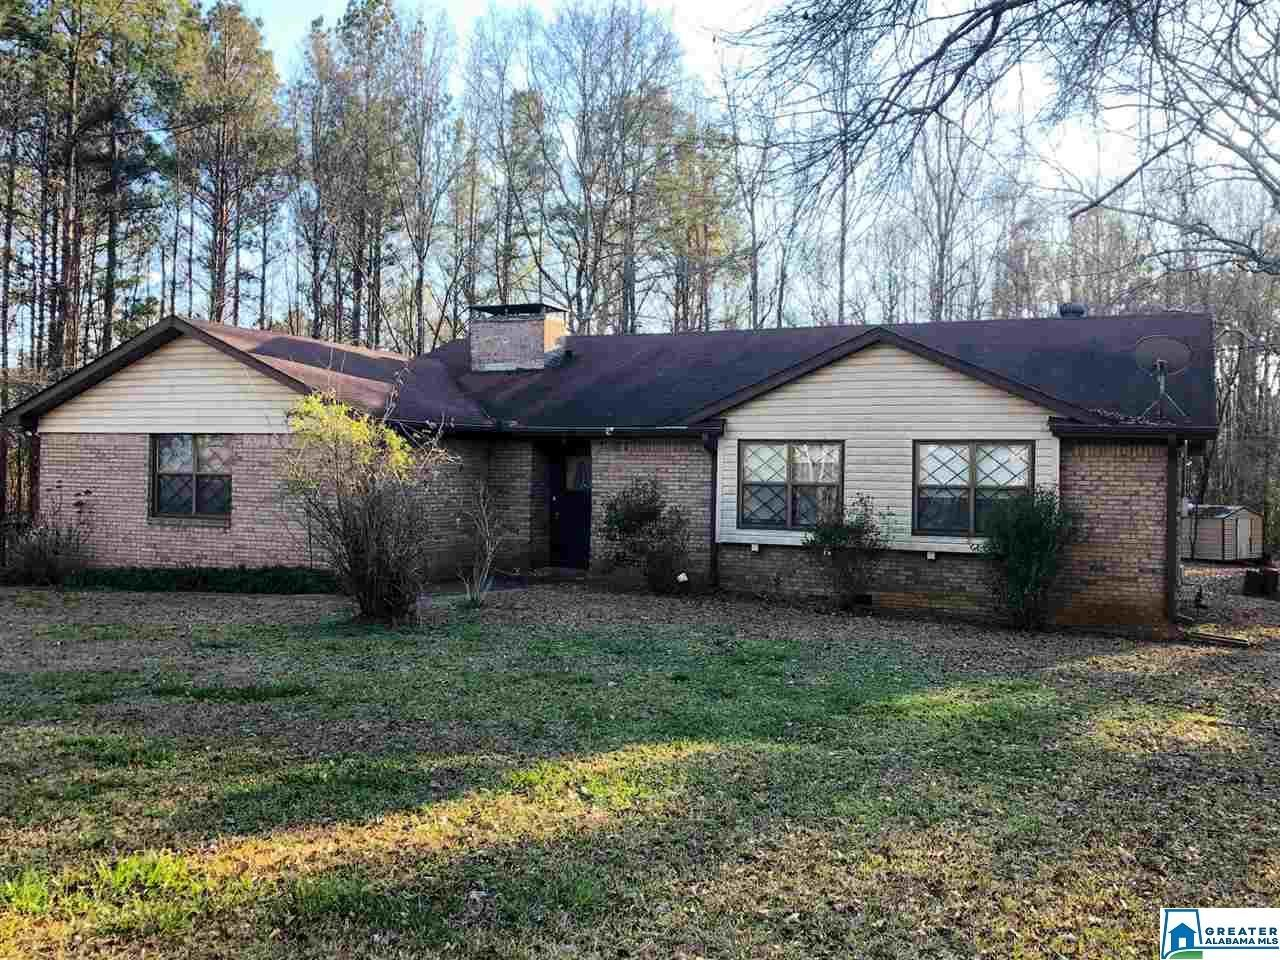 265 COUNTRY RD, Warrior, AL 35180 - MLS#: 870984